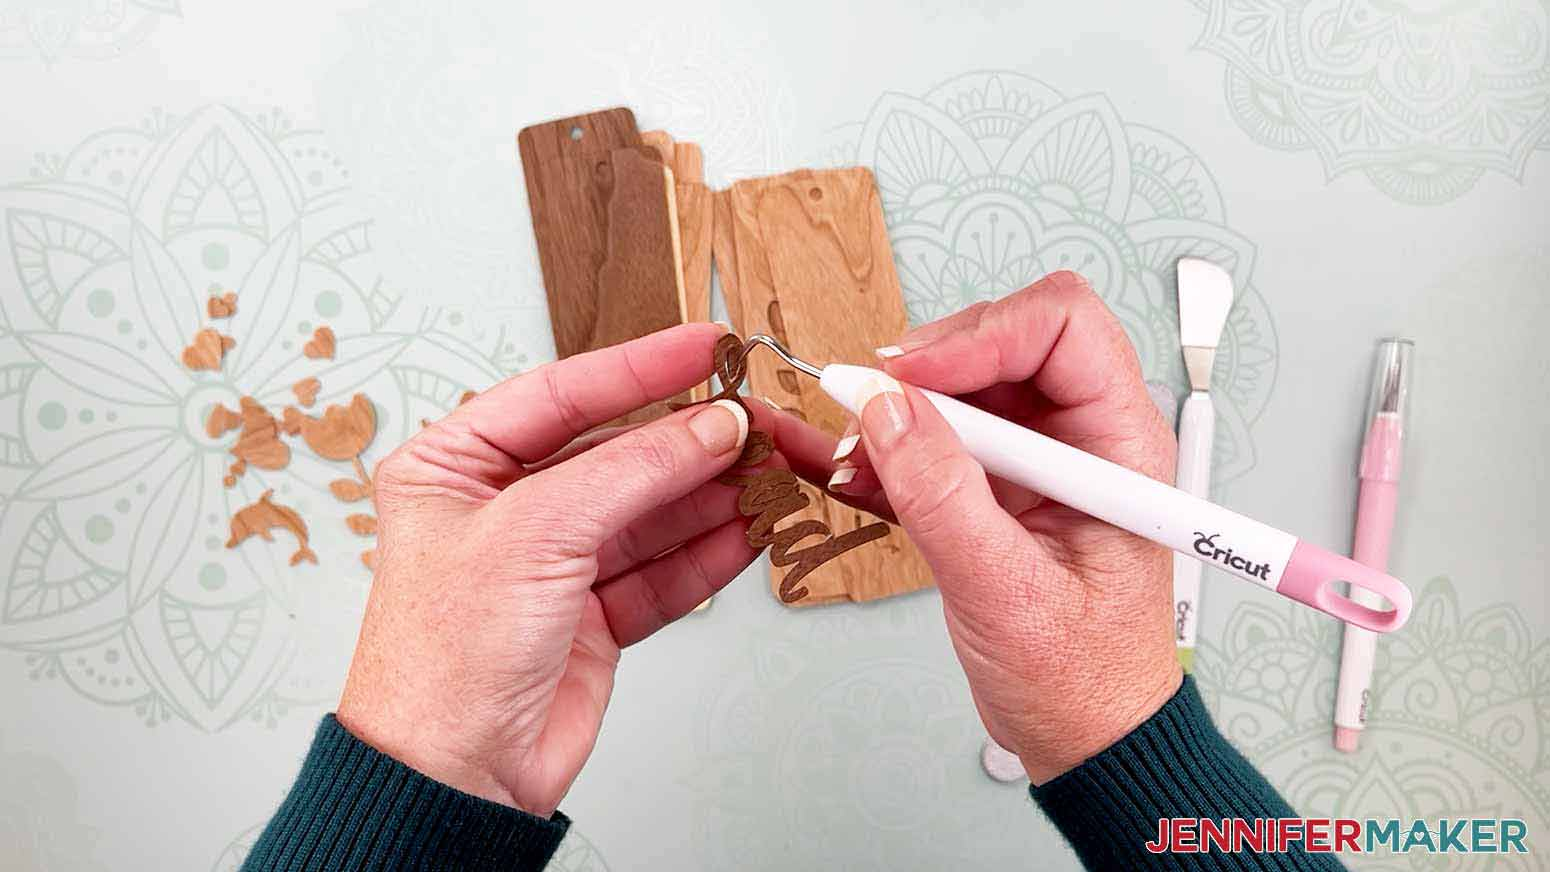 Use a weeding tool to help remove small pieces of veneer for my wooden bookmarks project